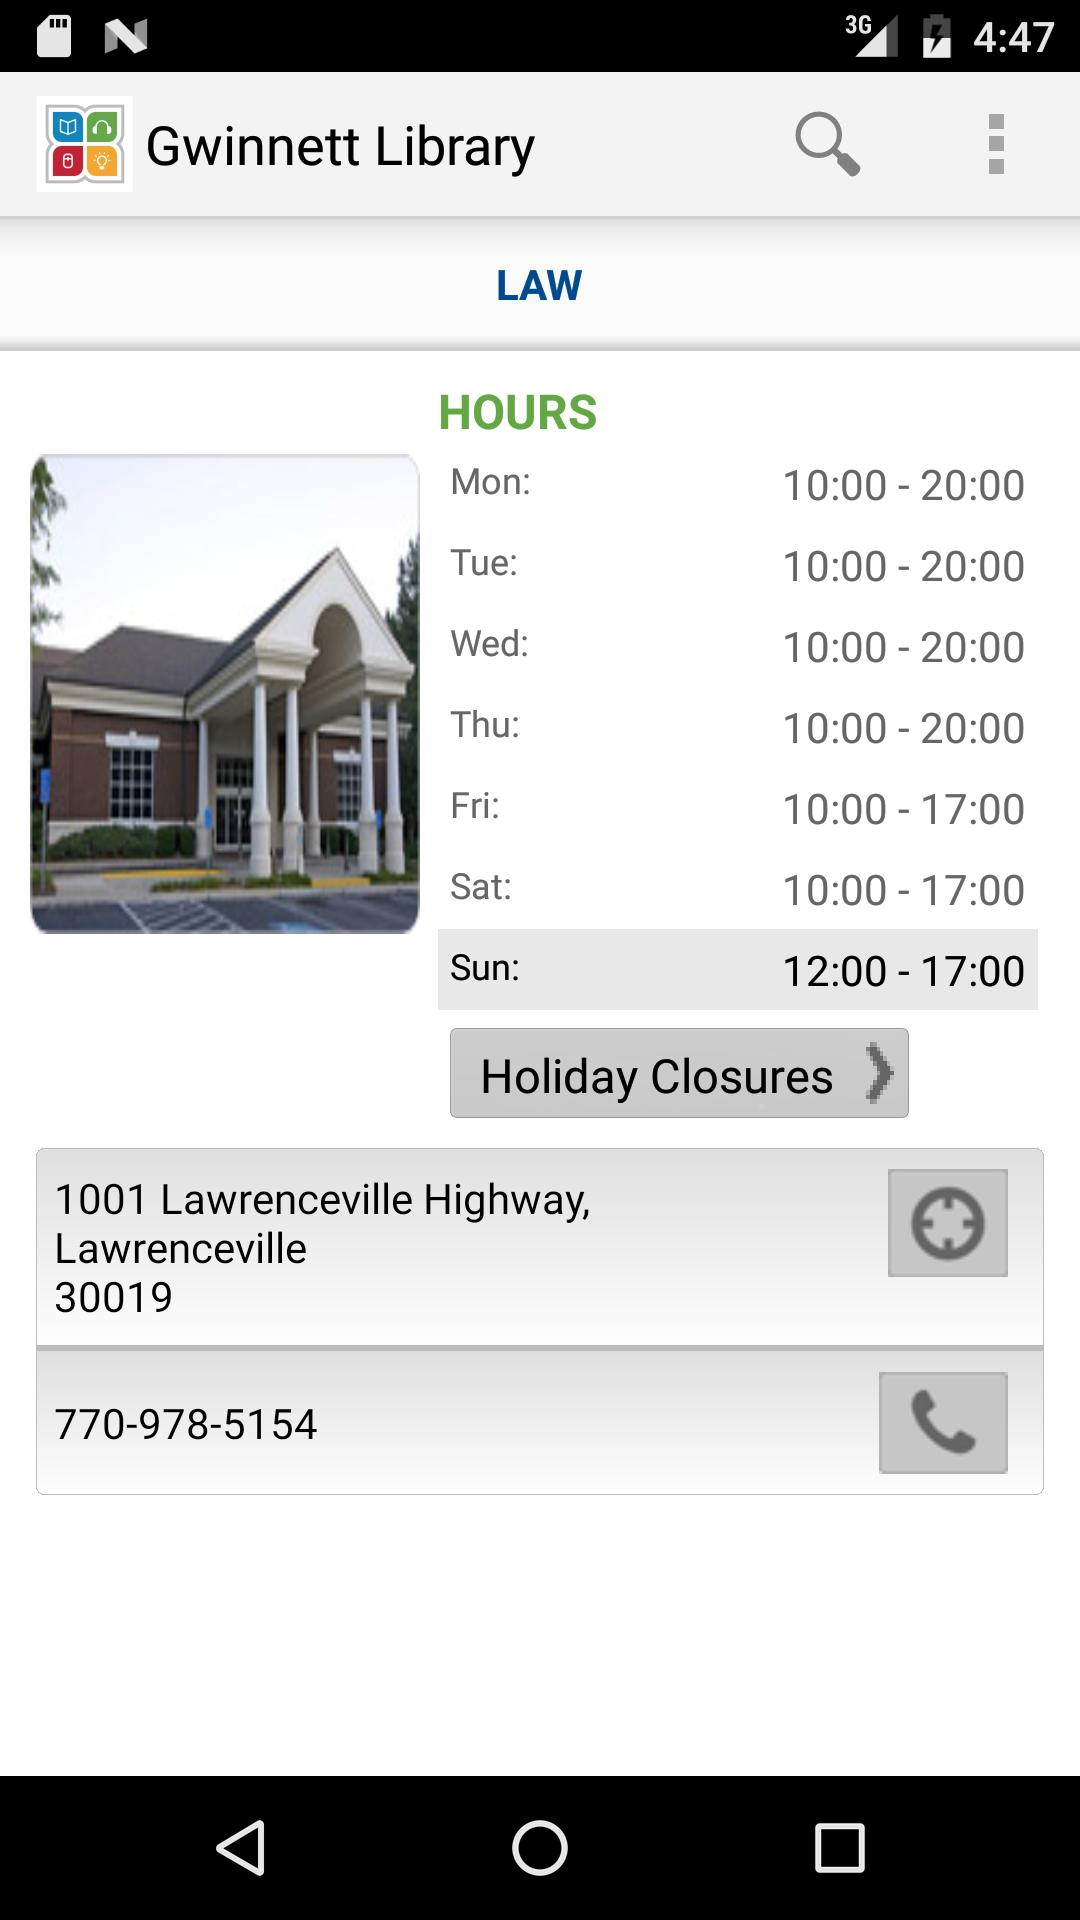 Gwinnett Library for Android - APK Download